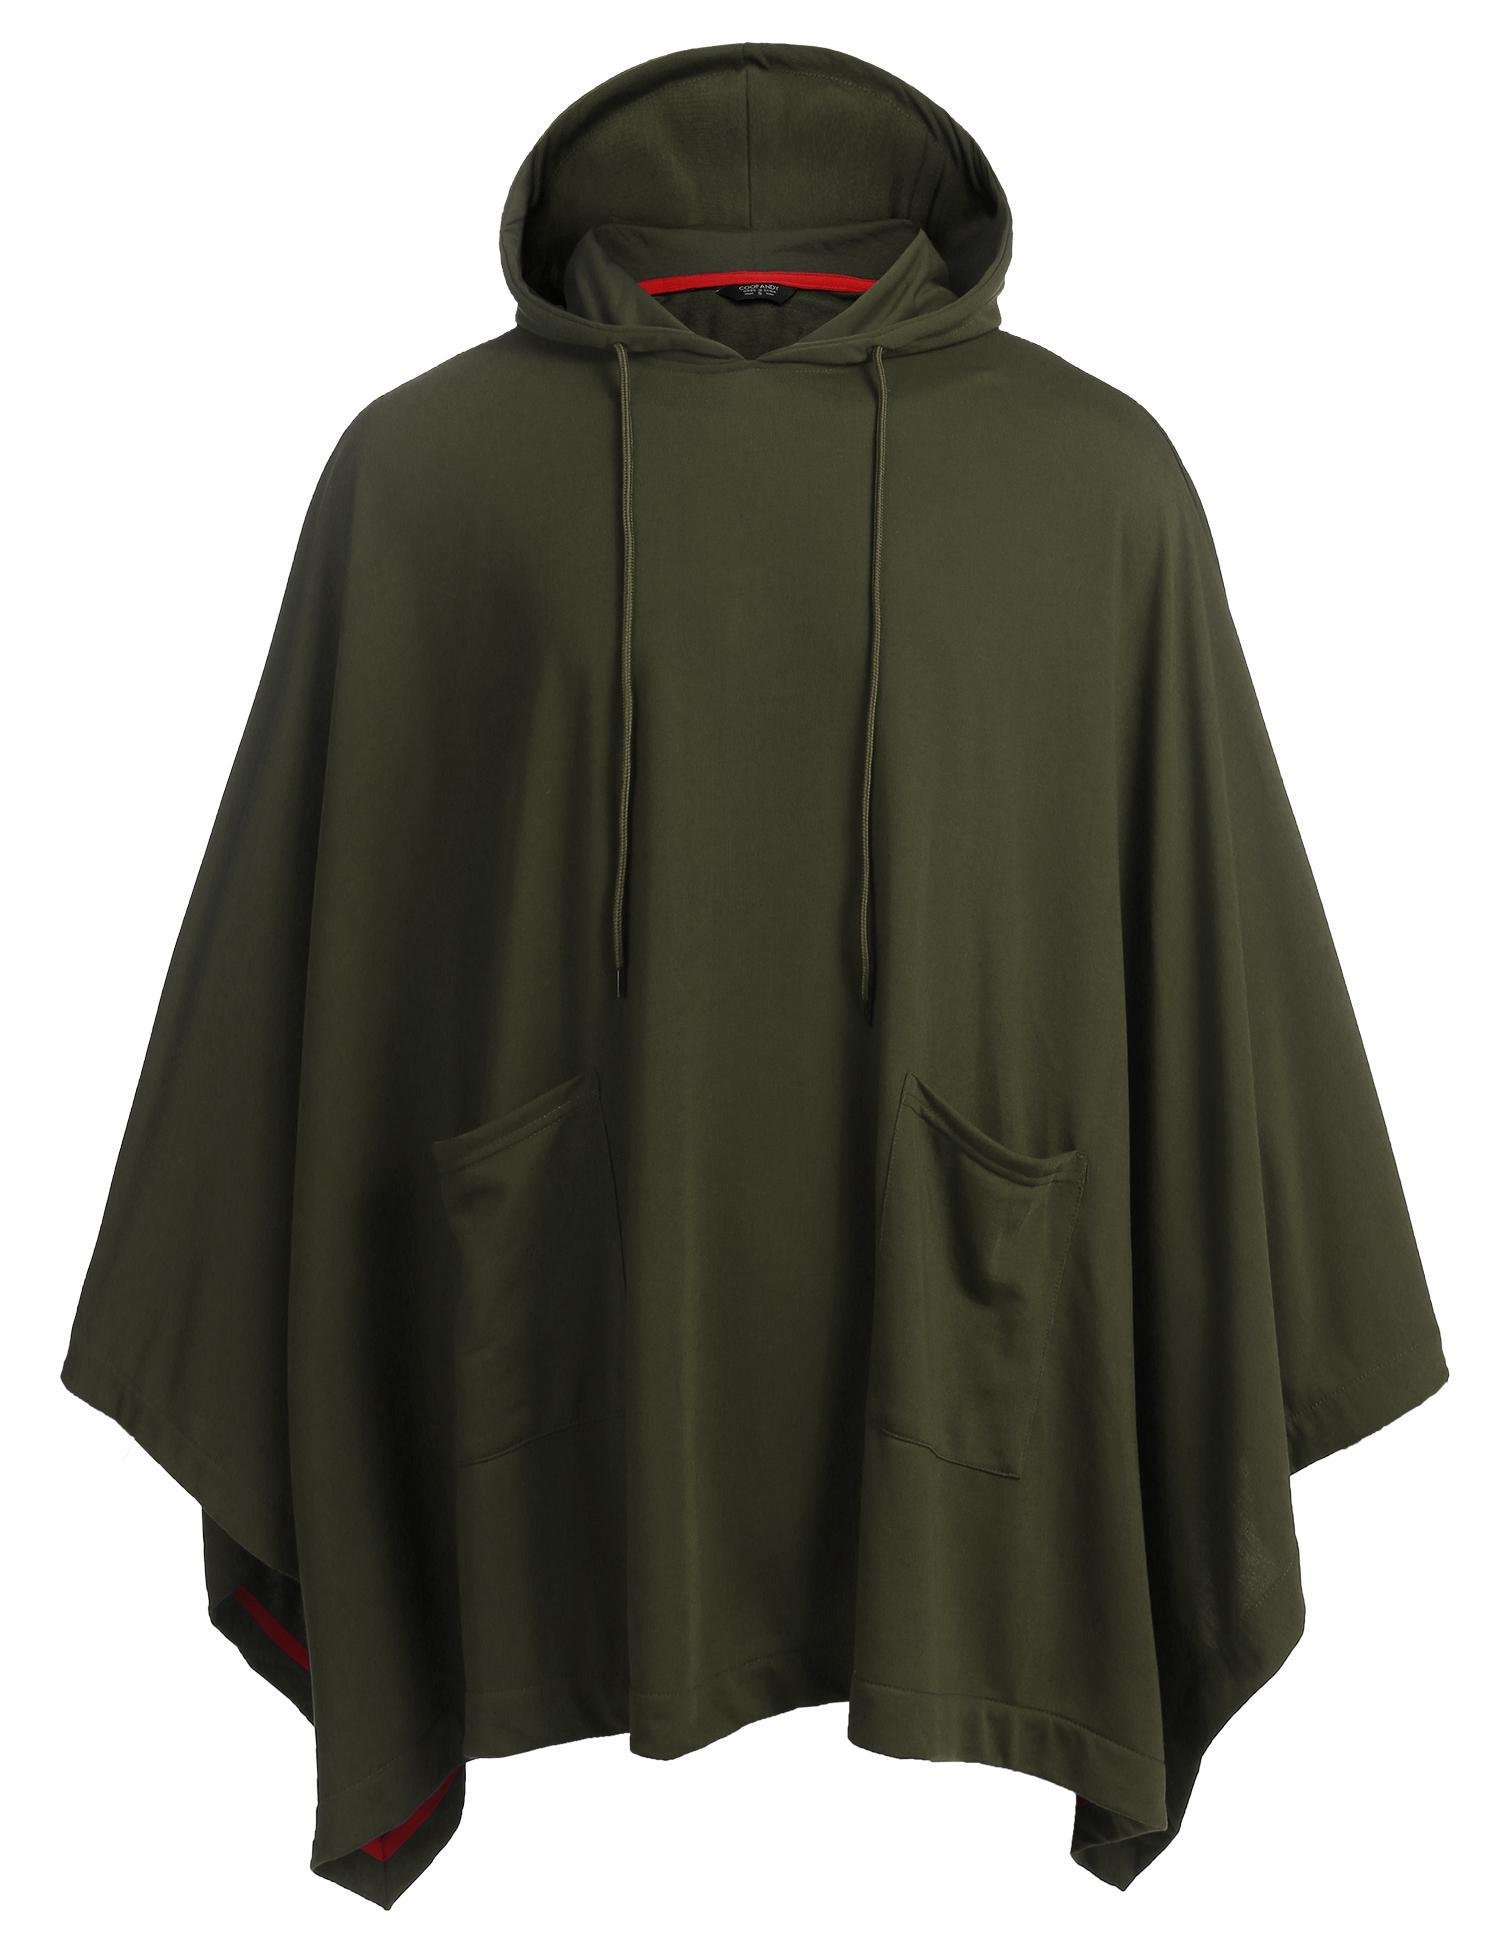 COOFANDY Unisex Casual Hooded Cloak Poncho Cape Coat With Pocket,X-Large,Army Green